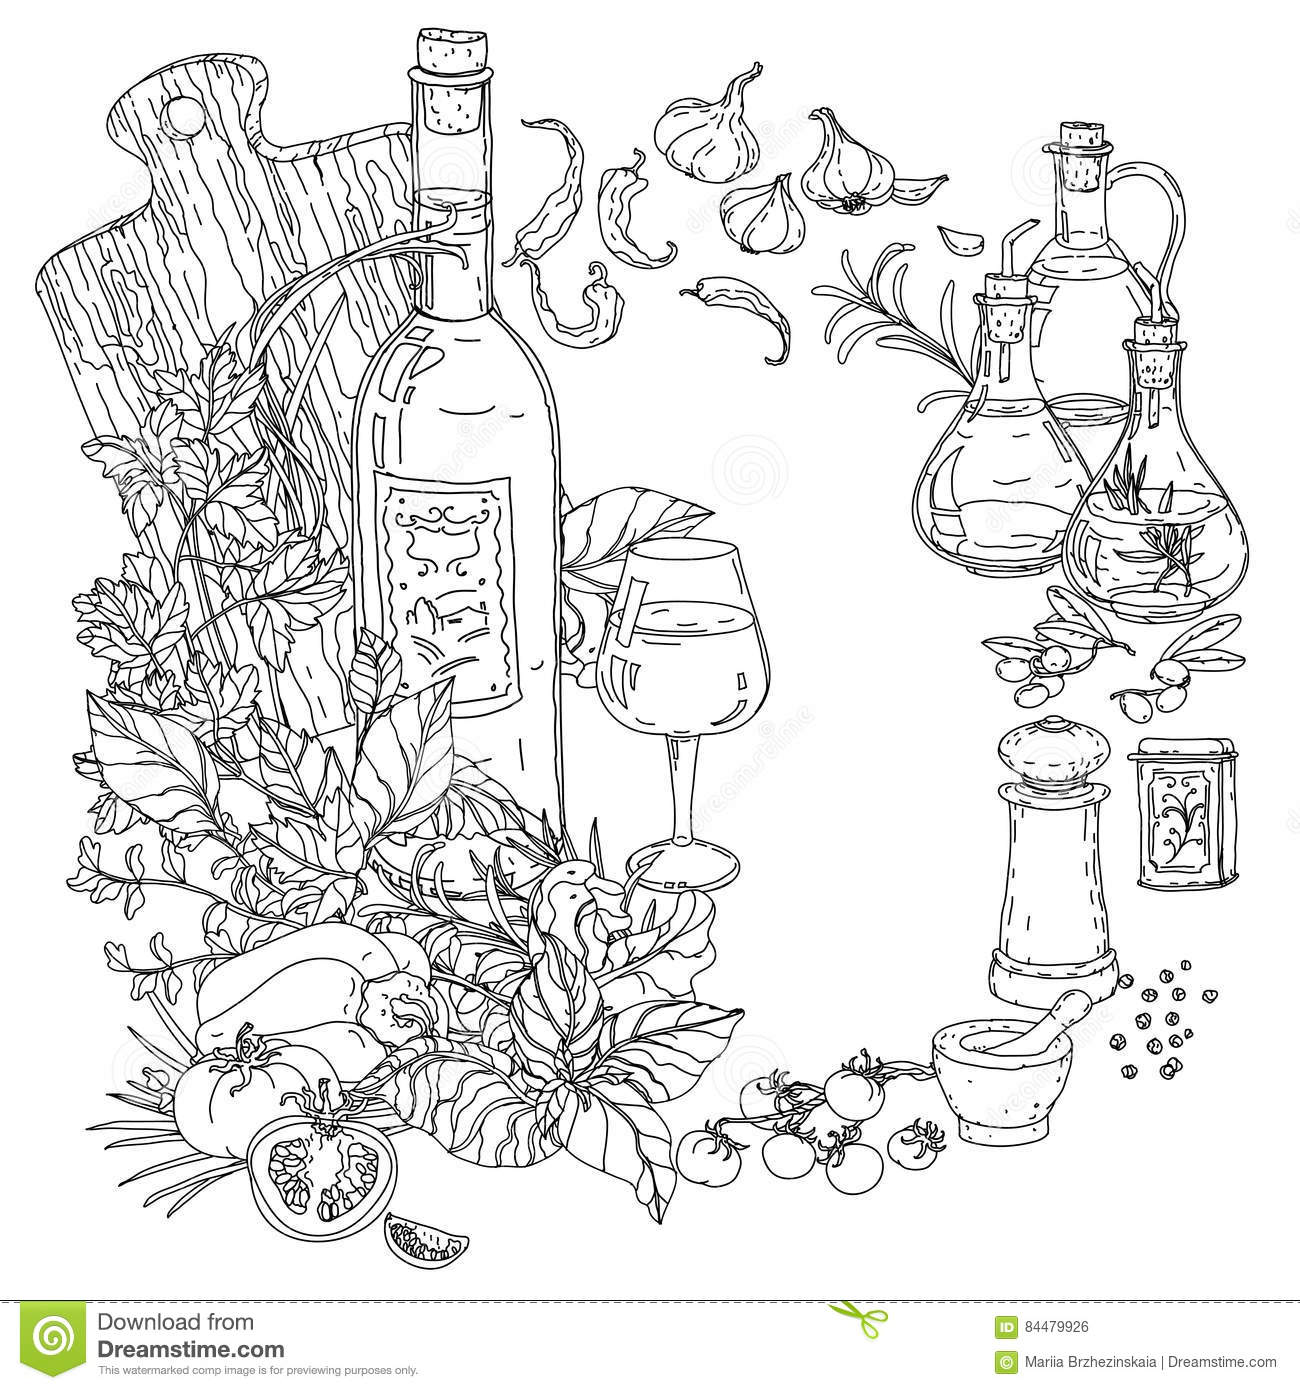 italian food coloring pages | Italian Cuisine For Coloring Book Stock Vector ...